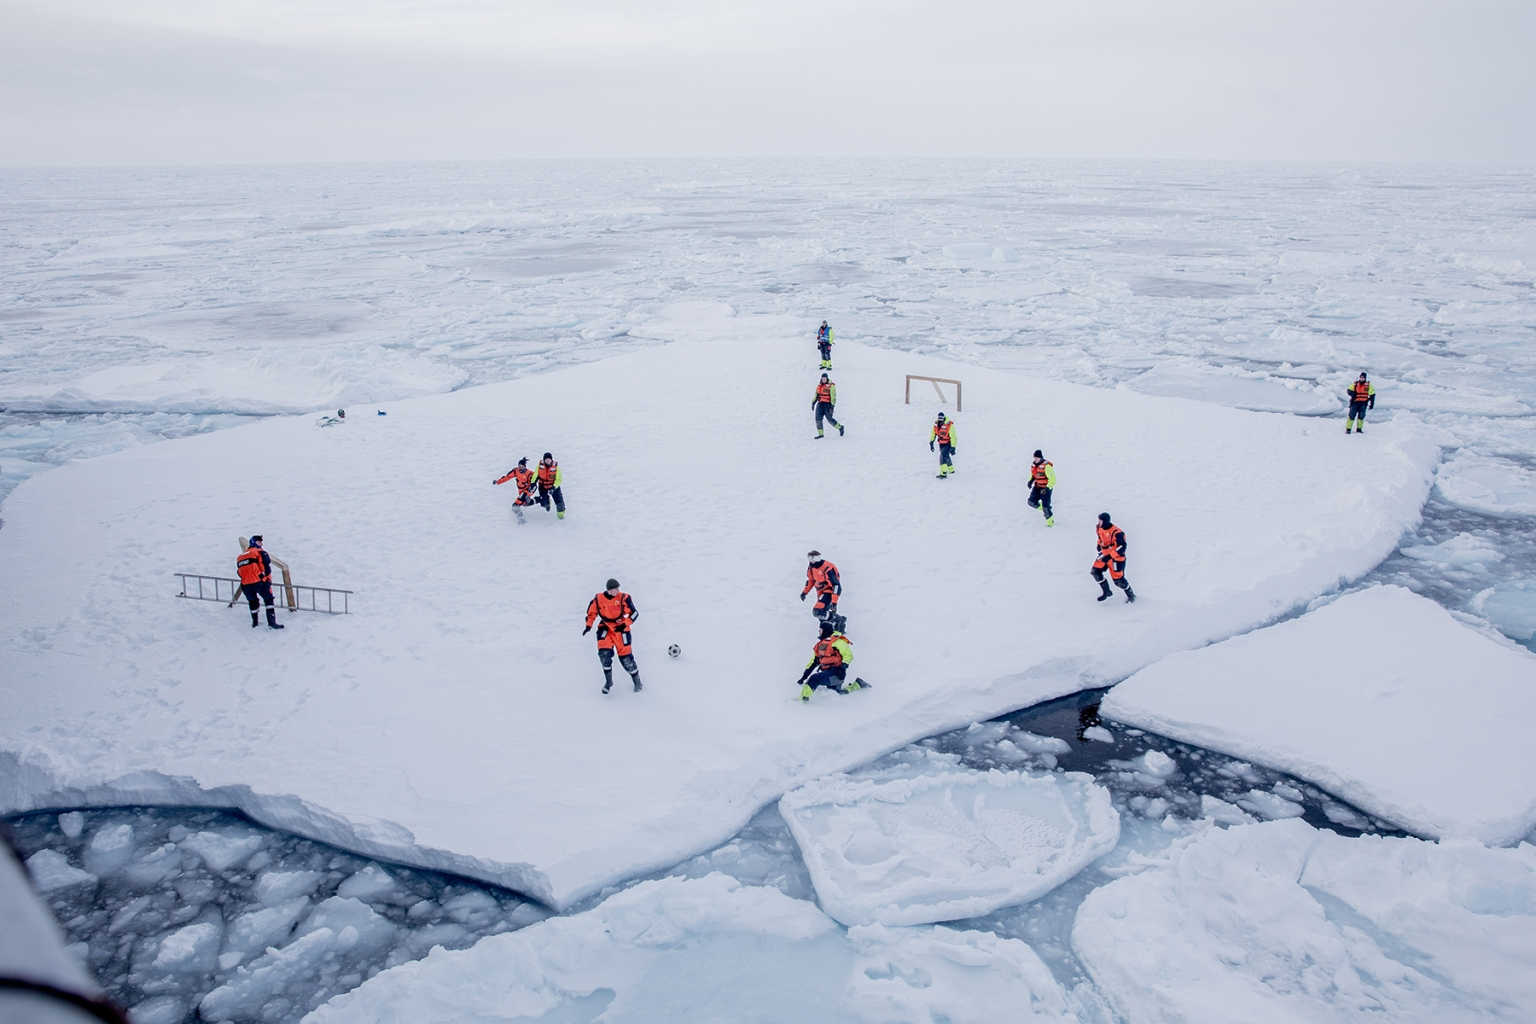 The crew of patrol vessel KV Svalbard and scientists from the Norwegian Institute of Marine Research play soccer on ice offshore in the sea around Greenland while two armed guards look out for polar bears on March 22 . MARIUS Vågenes VILLANGER/AFP/Getty Images